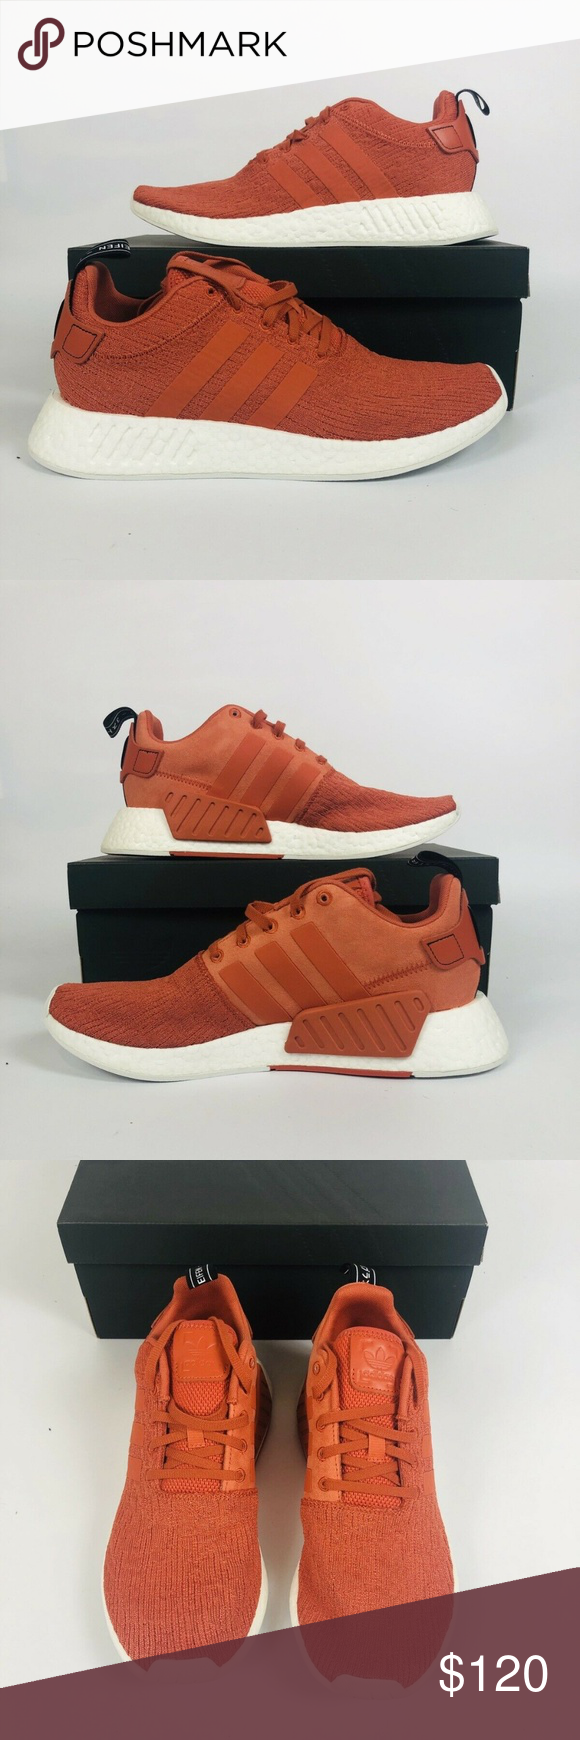 b900727358274 Adidas Originals NMD R2 Adidas Originals NMD R2 - Future Harvest Burnt  Orange Sneaker  BY9915  Mens New With Box Shipped Double Boxed Nike Shoes  Sneakers